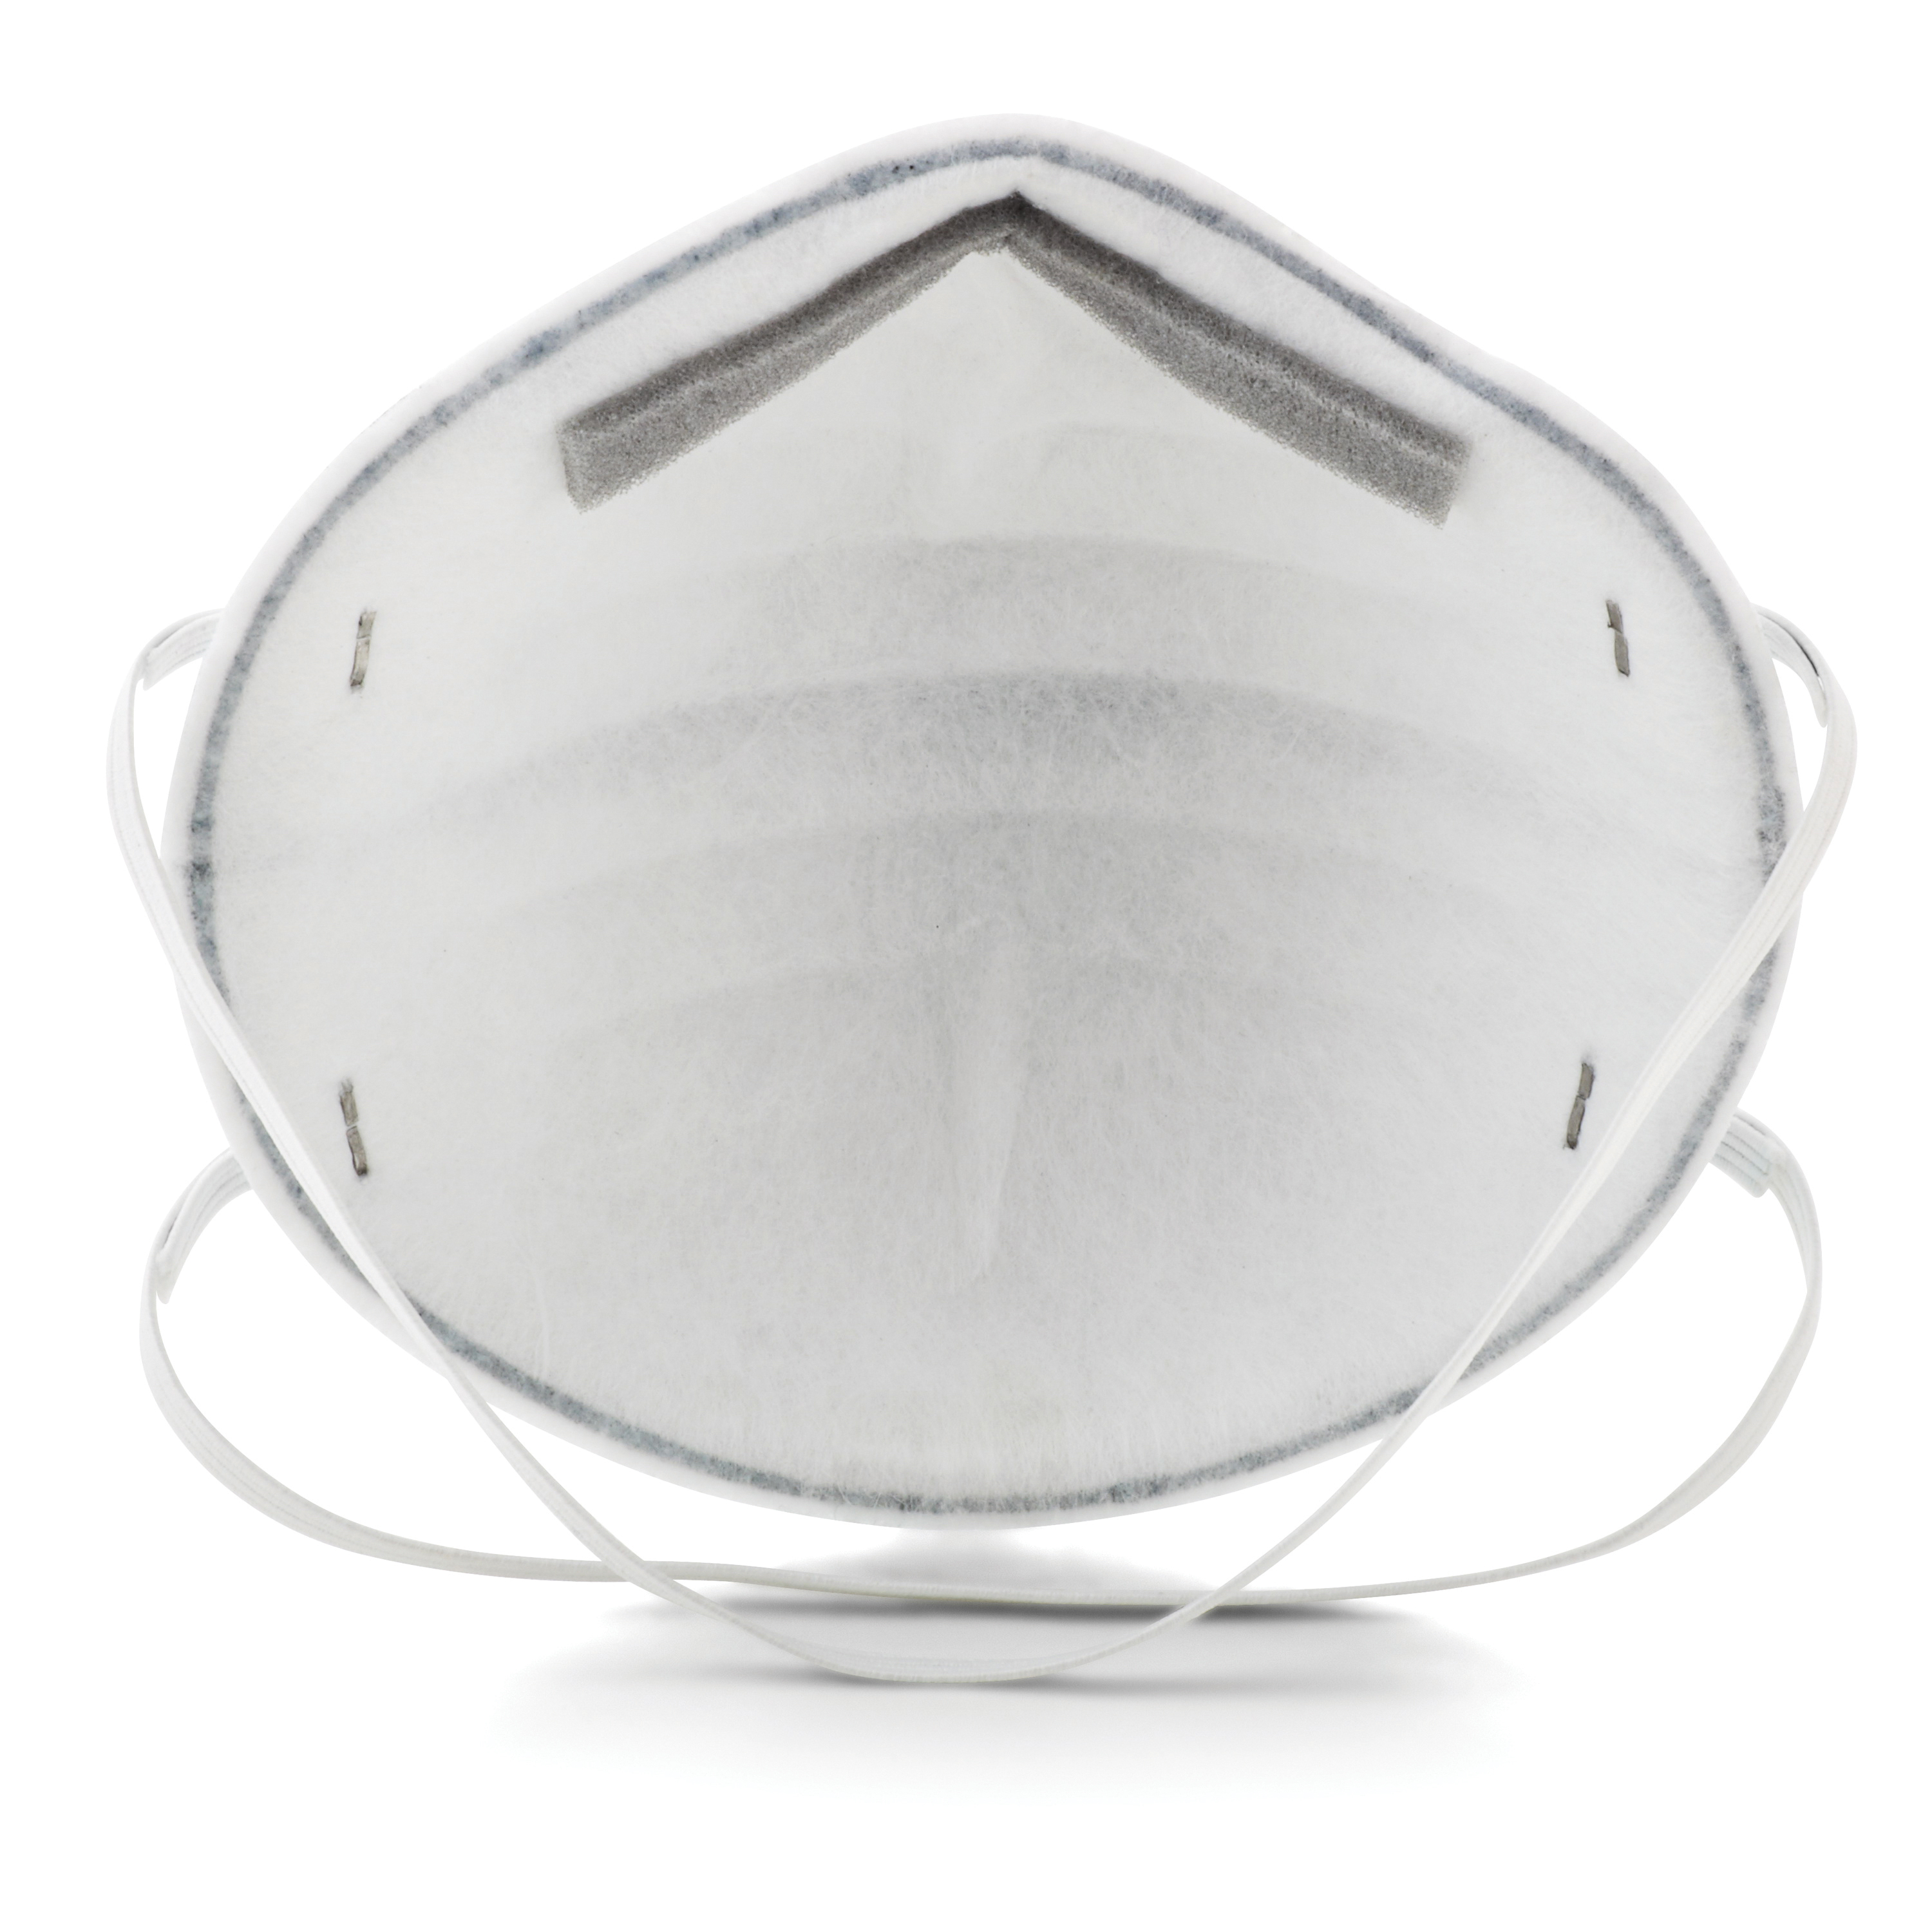 3M™ 051138-54357 8246 Cup Style Disposable Lightweight Particulate Respirator, Standard, Resists: Certain Oil, Non-Oil Based Particles and Acid Gases